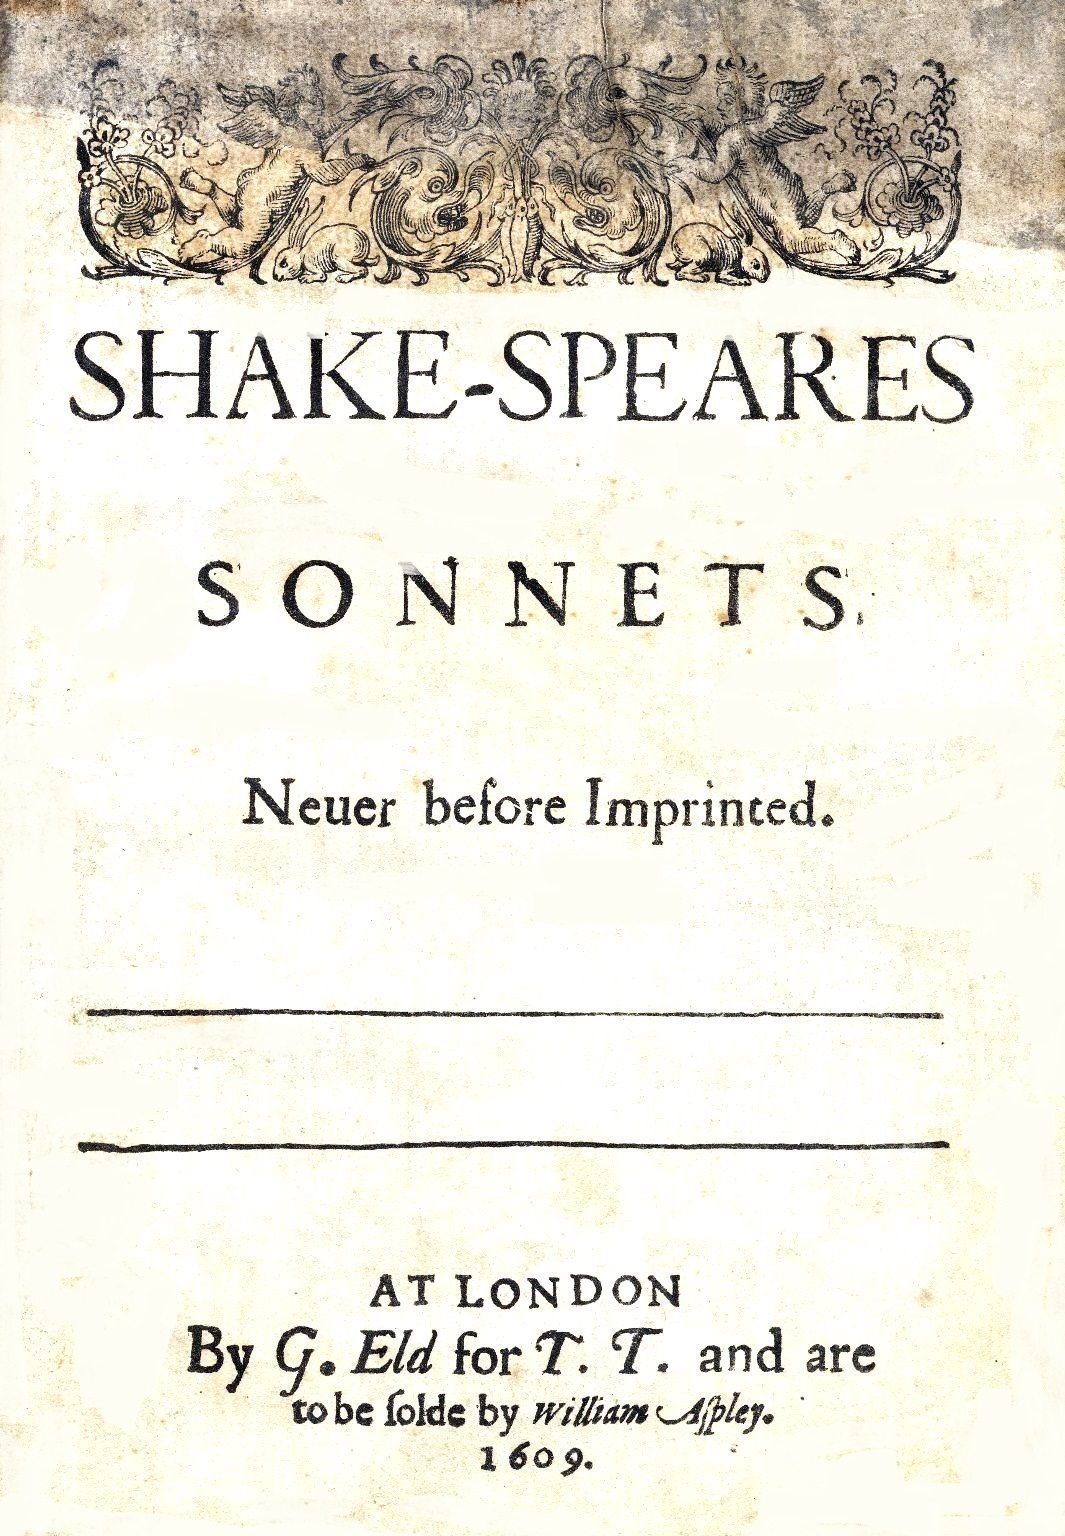 Shakespeare's Sonnets 18, 21, and 130: Three Expressions of Love Essay